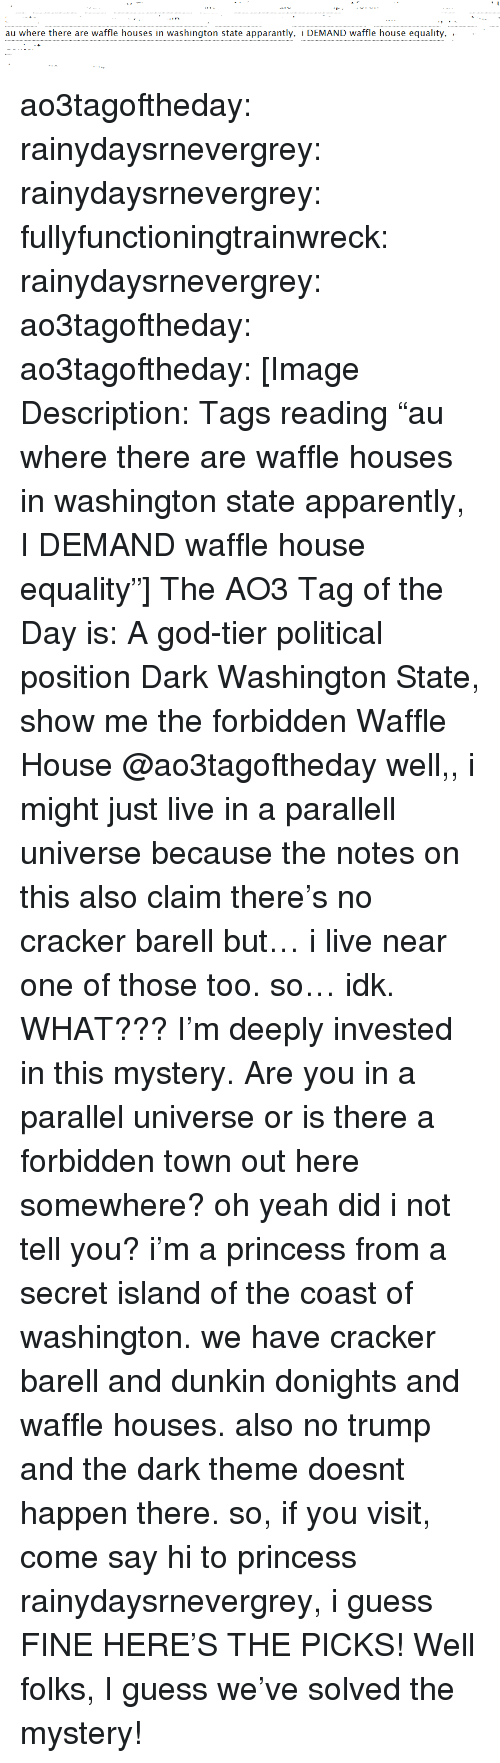 """cracker: au where there are waffle houses in washington state apparantly, i DEMAND waffle house equality, .  . ao3tagoftheday:  rainydaysrnevergrey:  rainydaysrnevergrey:  fullyfunctioningtrainwreck:  rainydaysrnevergrey:   ao3tagoftheday:  ao3tagoftheday:   [Image Description: Tags reading """"au where there are waffle houses in washington state apparently, I DEMAND waffle house equality""""]  The AO3 Tag of the Day is: A god-tier political position    Dark Washington State, show me the forbidden Waffle House  @ao3tagoftheday well,, i might just live in a parallell universe because the notes on this also claim there's no cracker barell but… i live near one of those too. so… idk.   WHAT??? I'm deeply invested in this mystery. Are you in a parallel universe or is there a forbidden town out here somewhere?  oh yeah did i not tell you? i'm a princess from a secret island of the coast of washington. we have cracker barell and dunkin donights and waffle houses. also no trump and the dark theme doesnt happen there. so, if you visit, come say hi to princess rainydaysrnevergrey, i guess  FINE HERE'S THE PICKS!  Well folks, I guess we've solved the mystery!"""